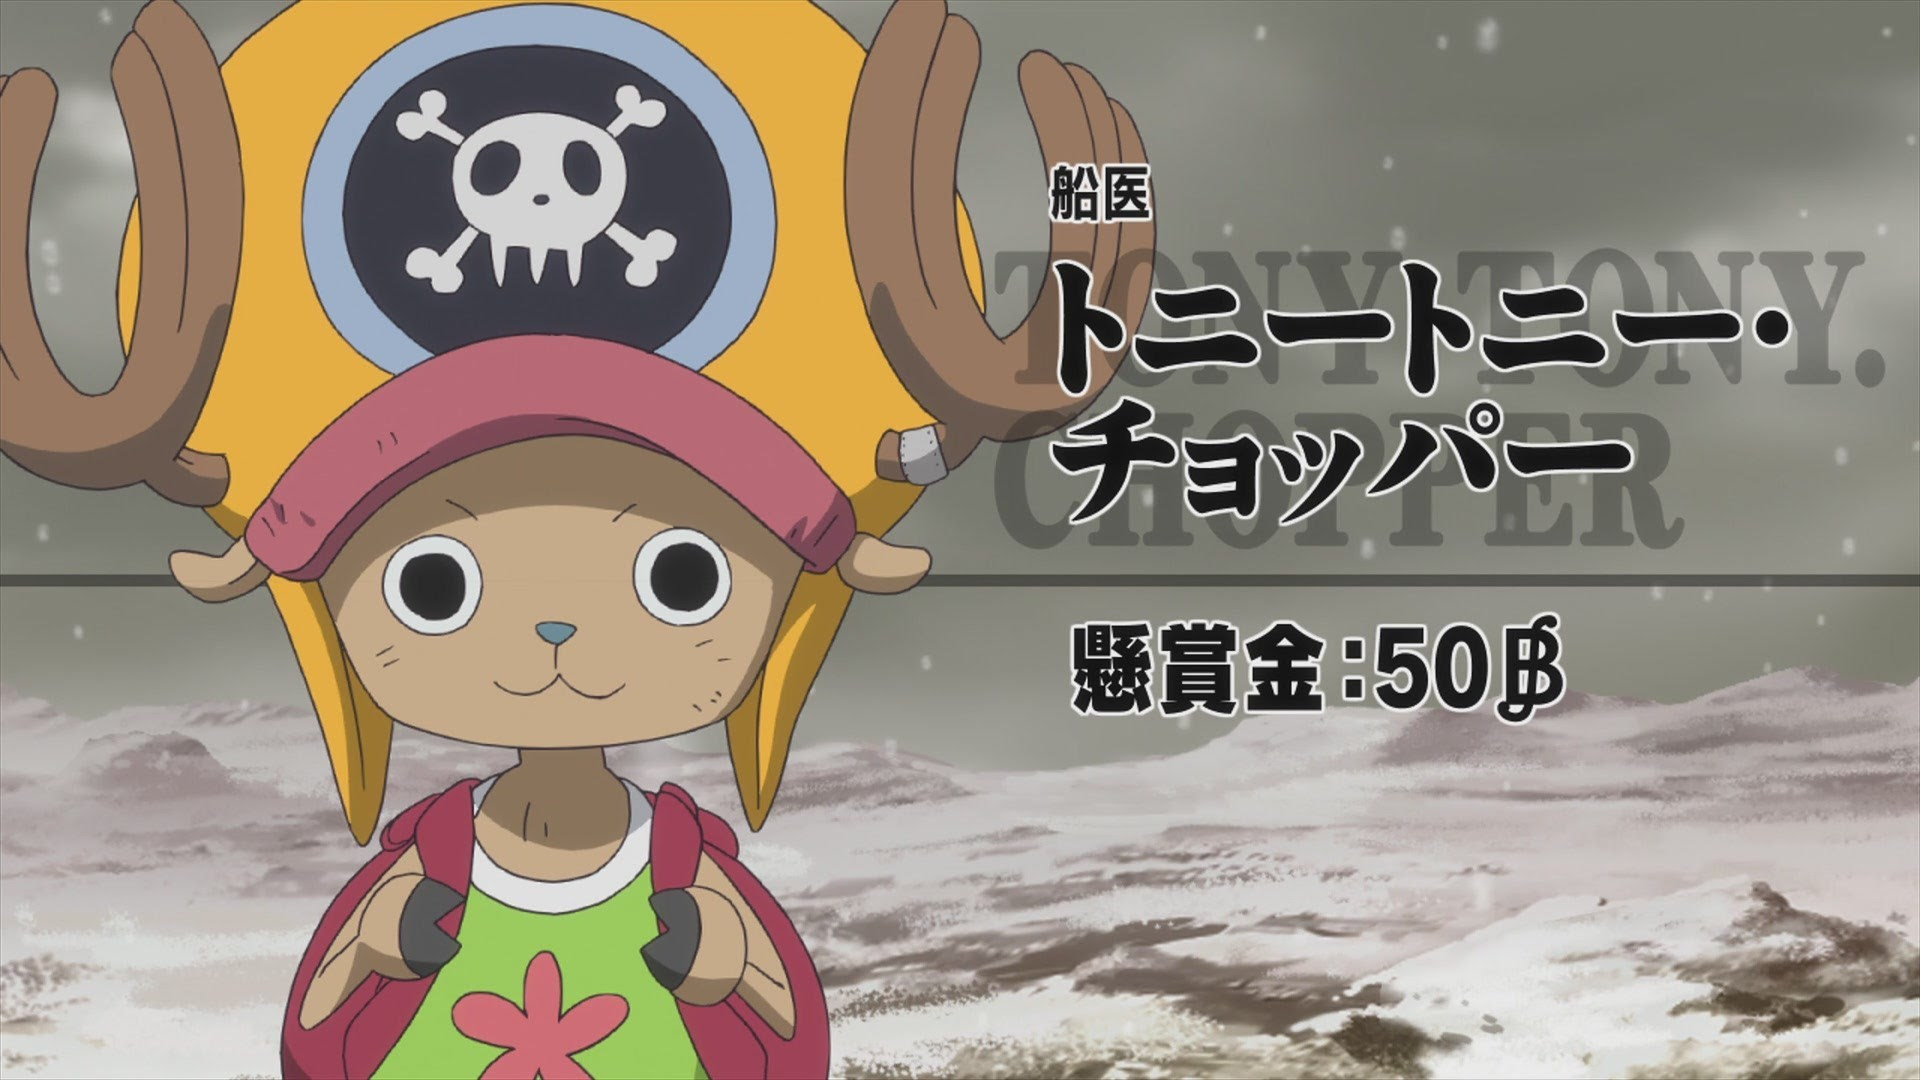 Chopper One Piece Wallpapers 69 Images